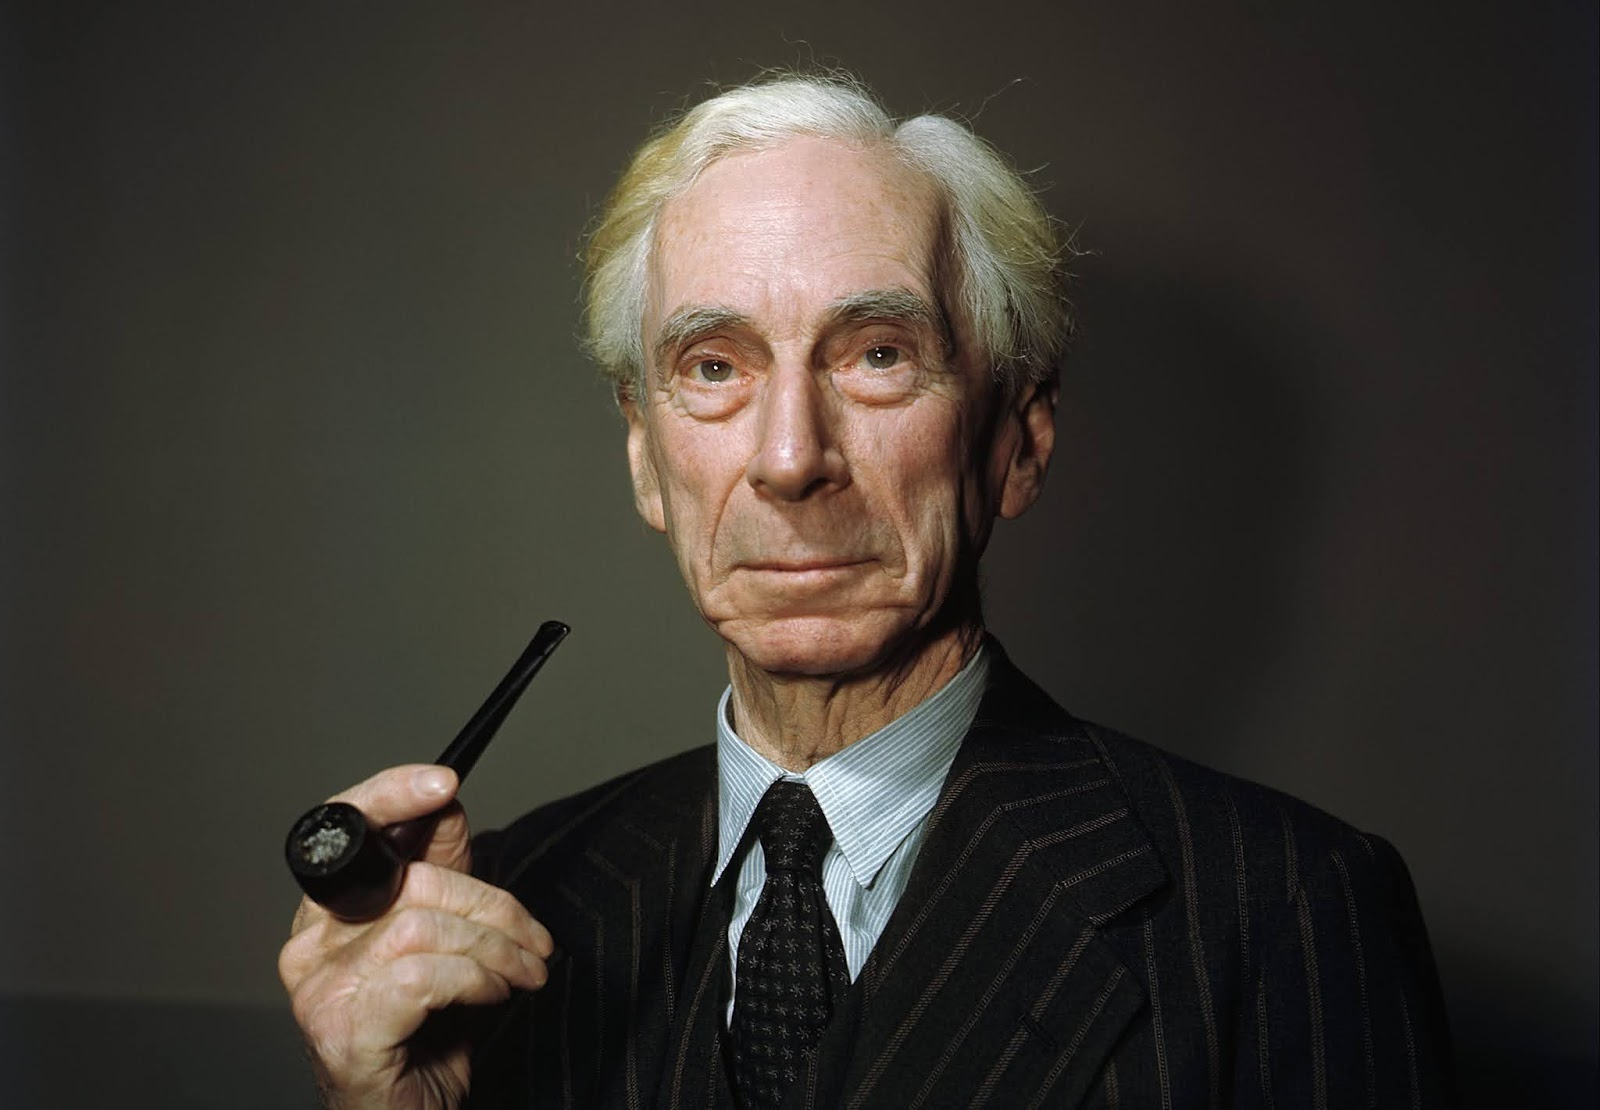 BERTRAND RUSSELL - Free willl